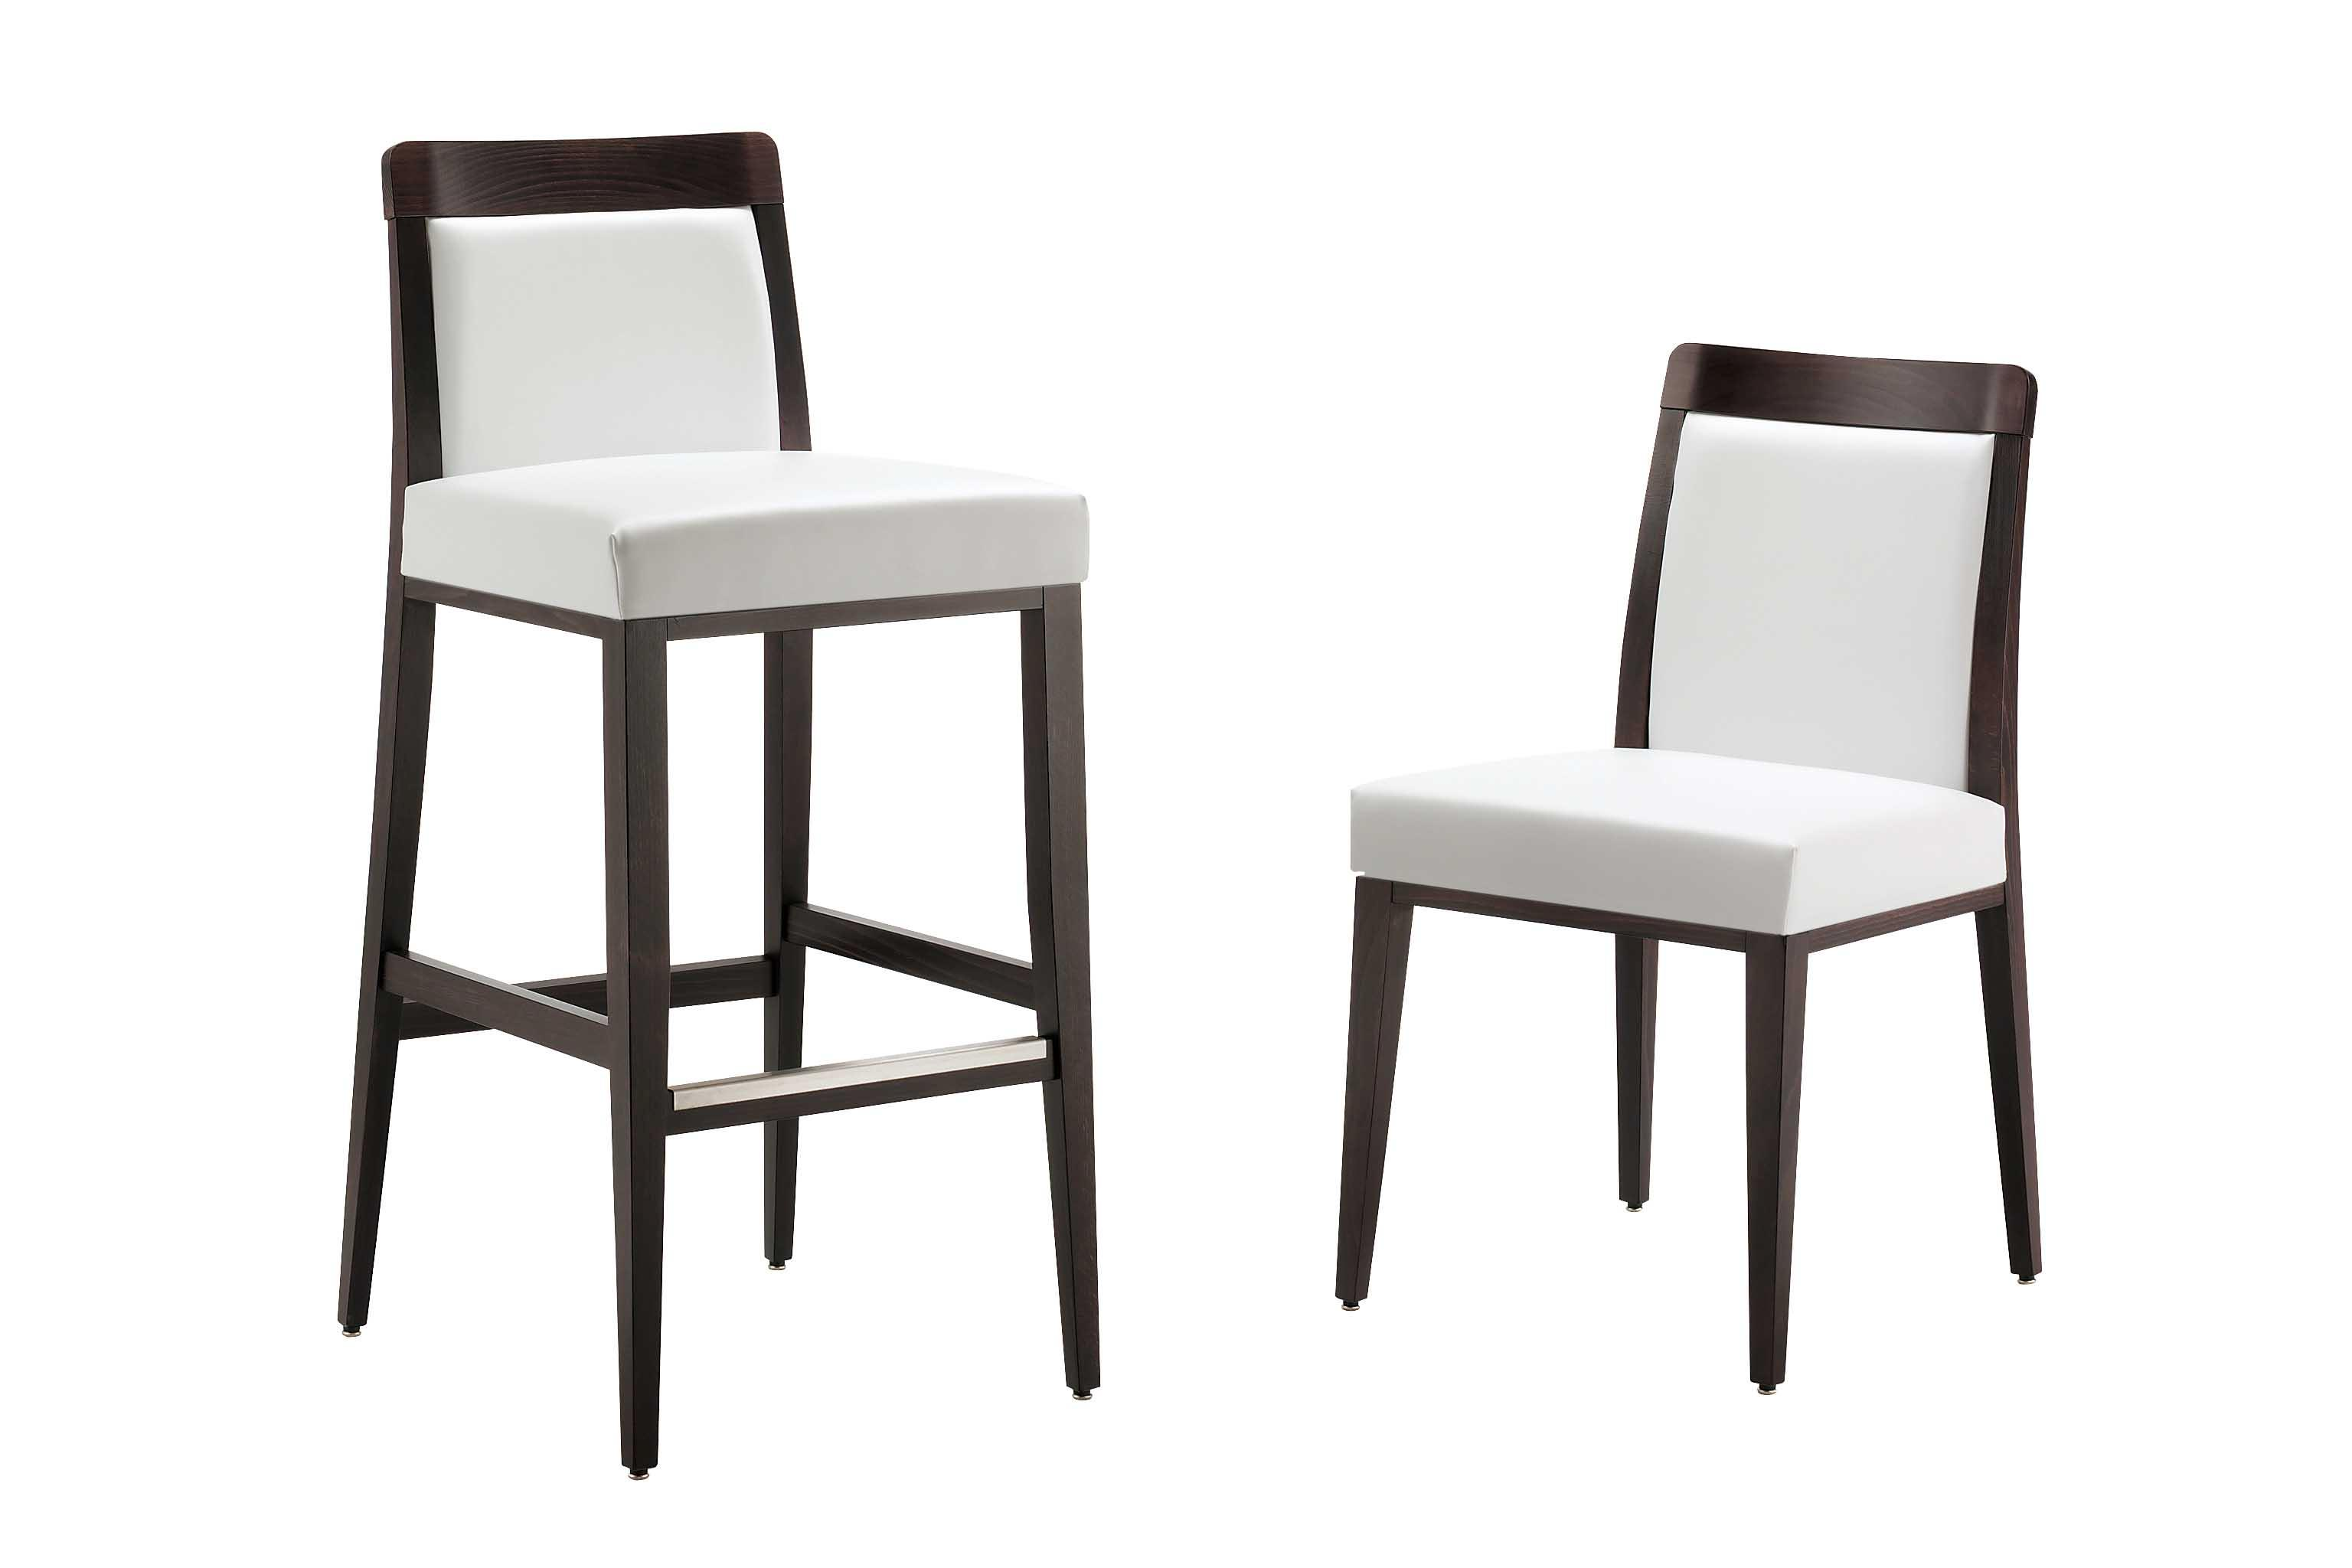 Restaurant Chairs Restaurant Chairs Contemporary 4 10000 Pieces